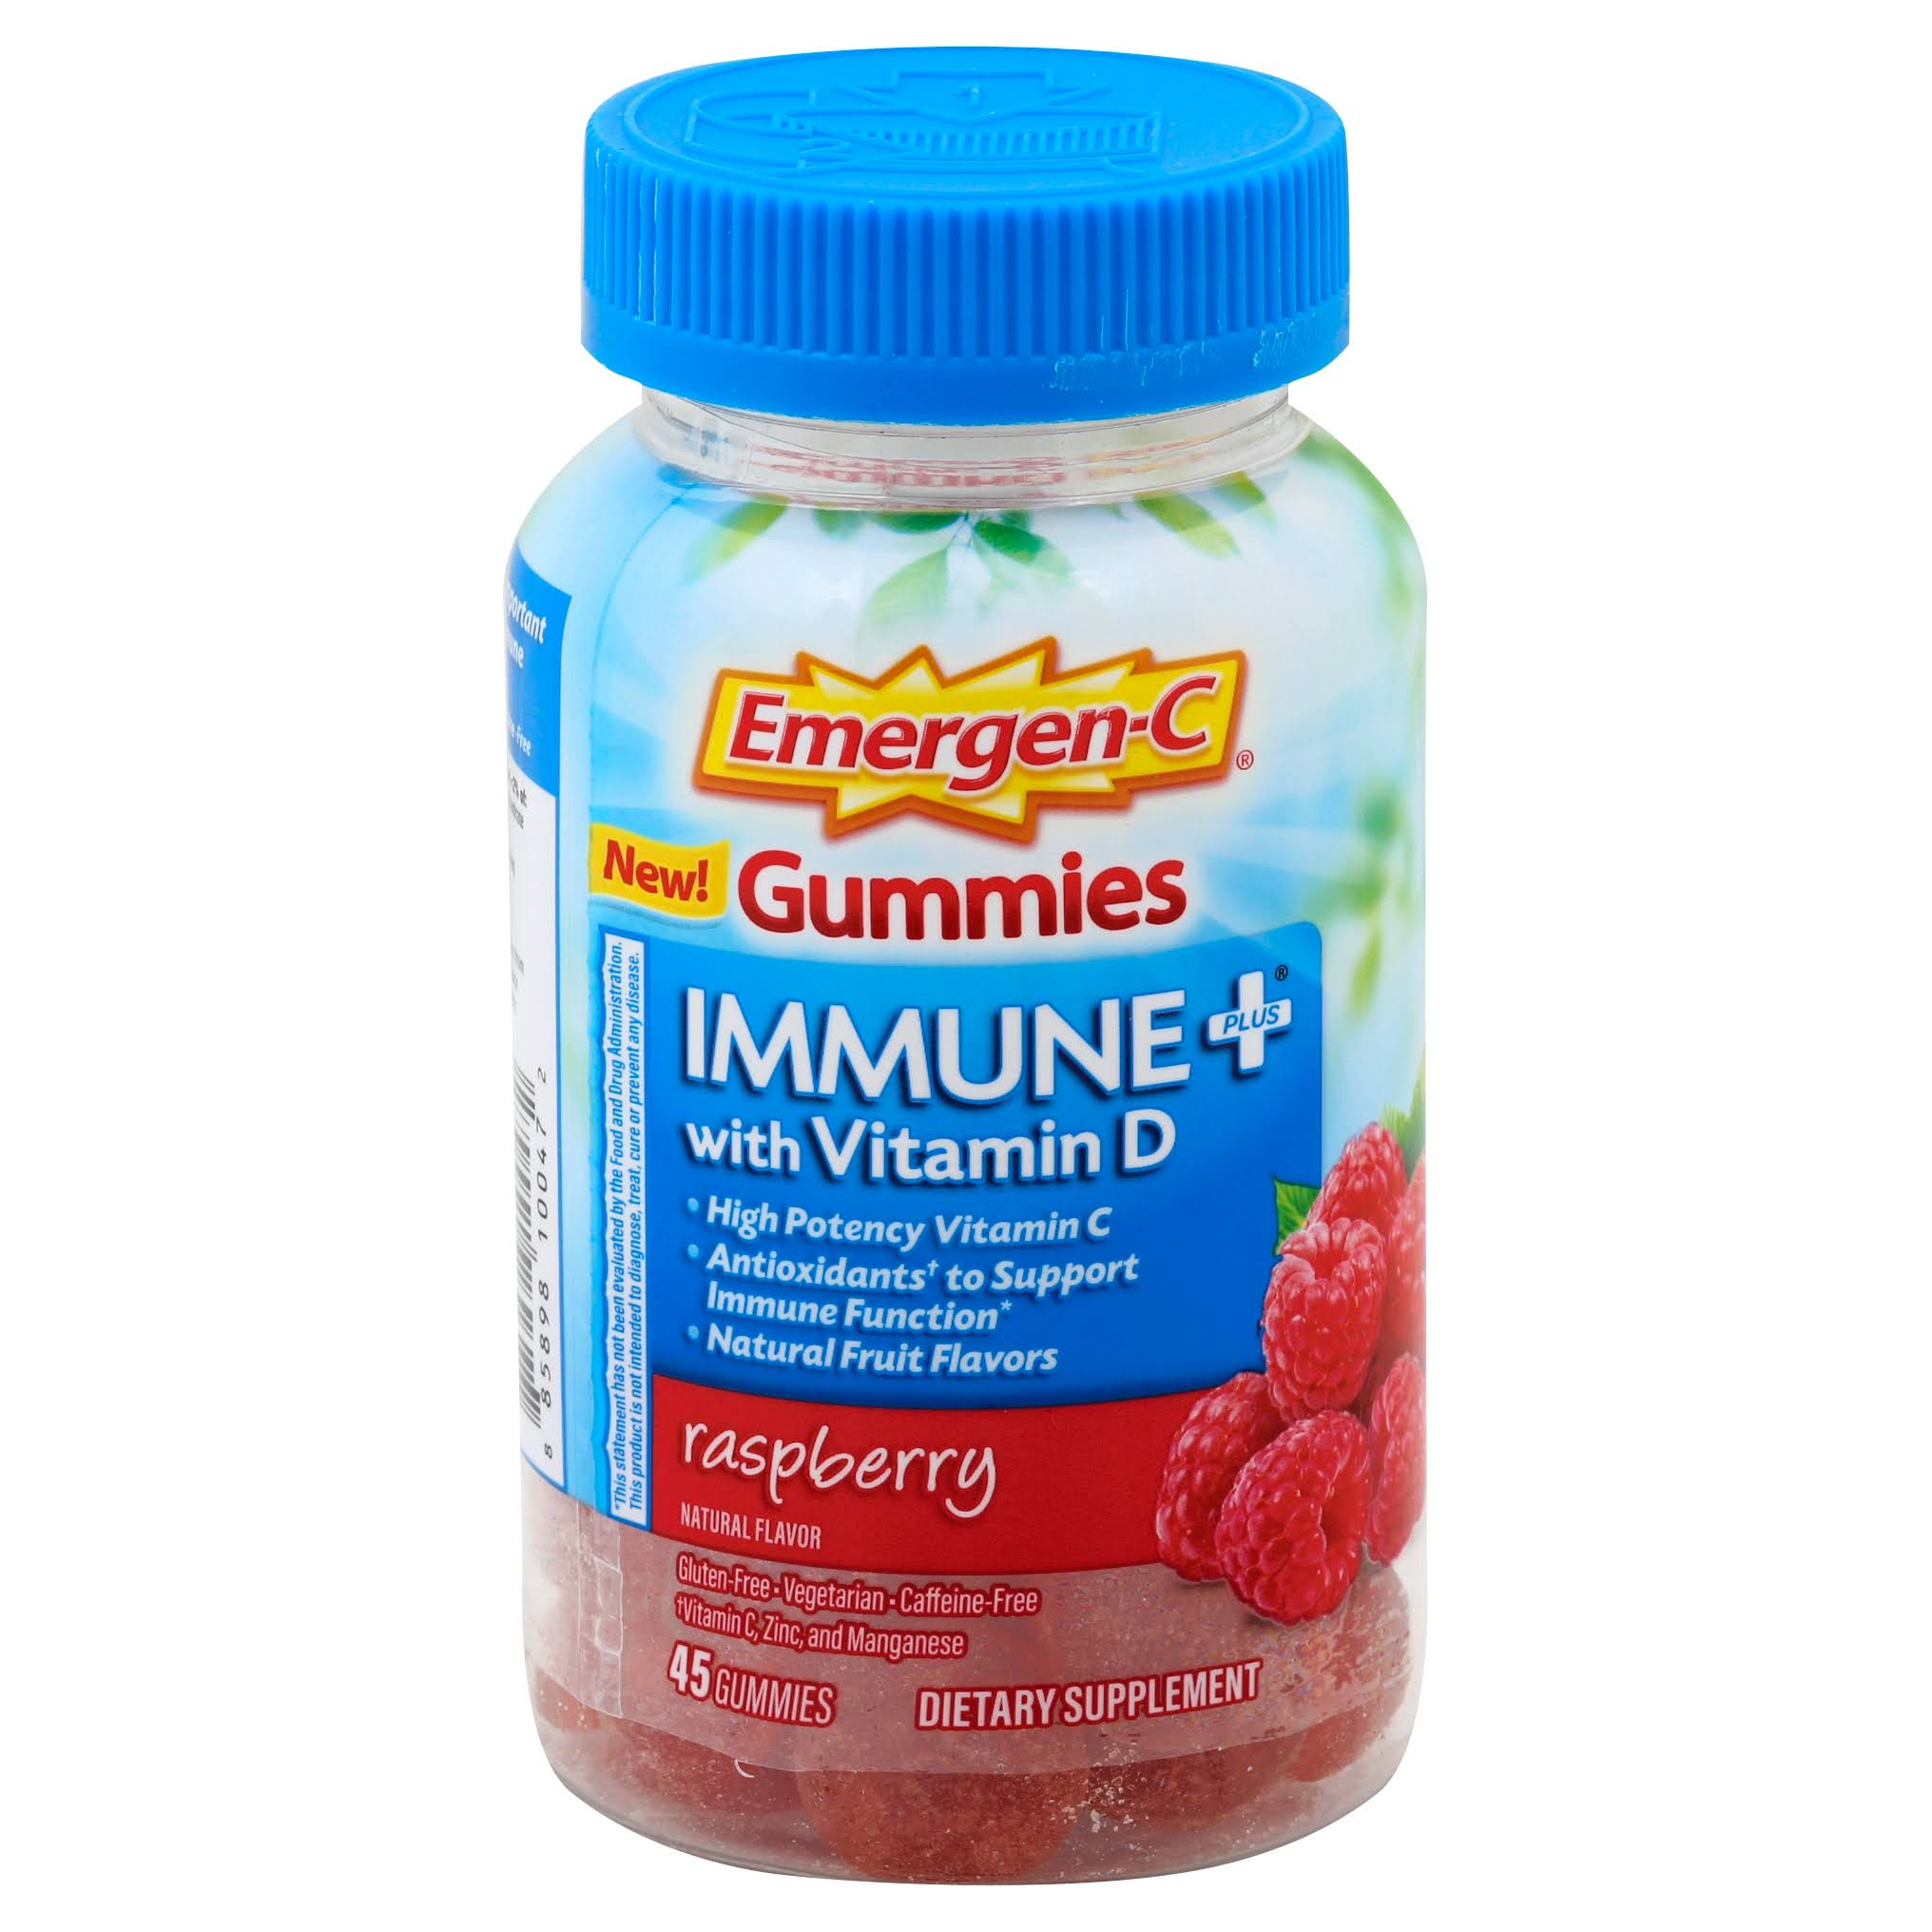 Emergen-C Immune Plus with Vitamin D Gummies - Raspberry, 45pcs